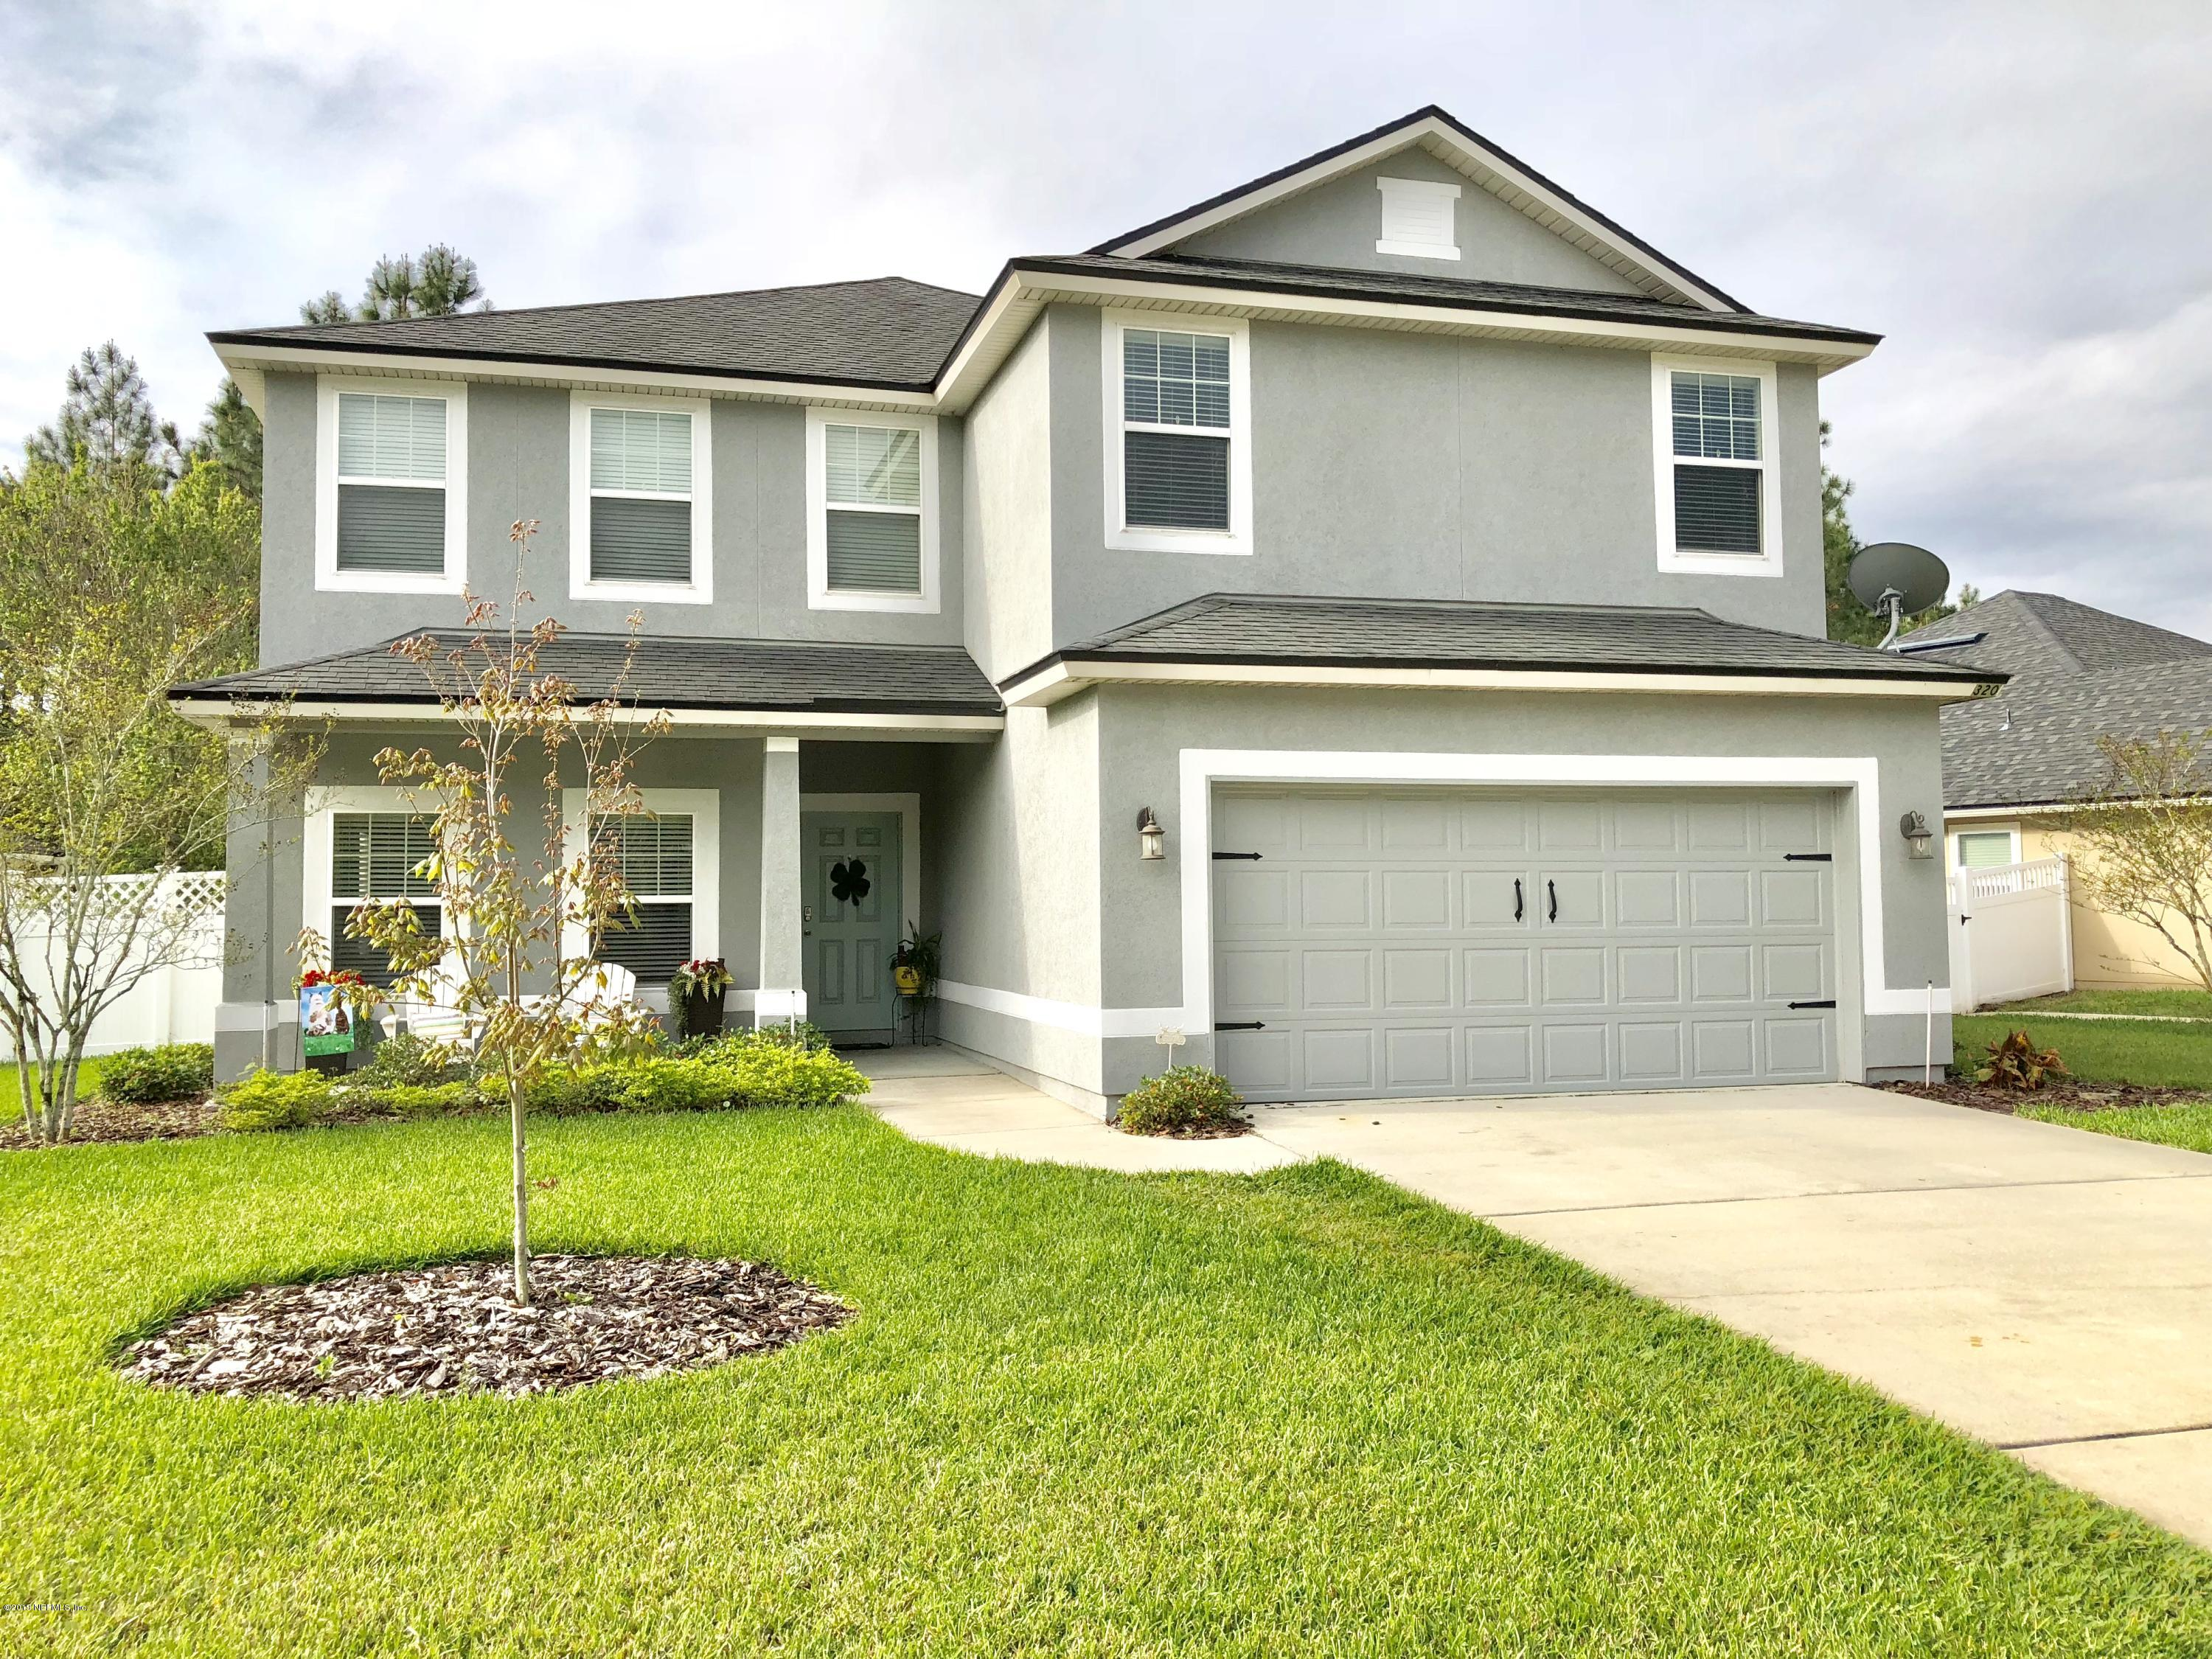 320 W ADELAIDE DR, St Johns, Florida